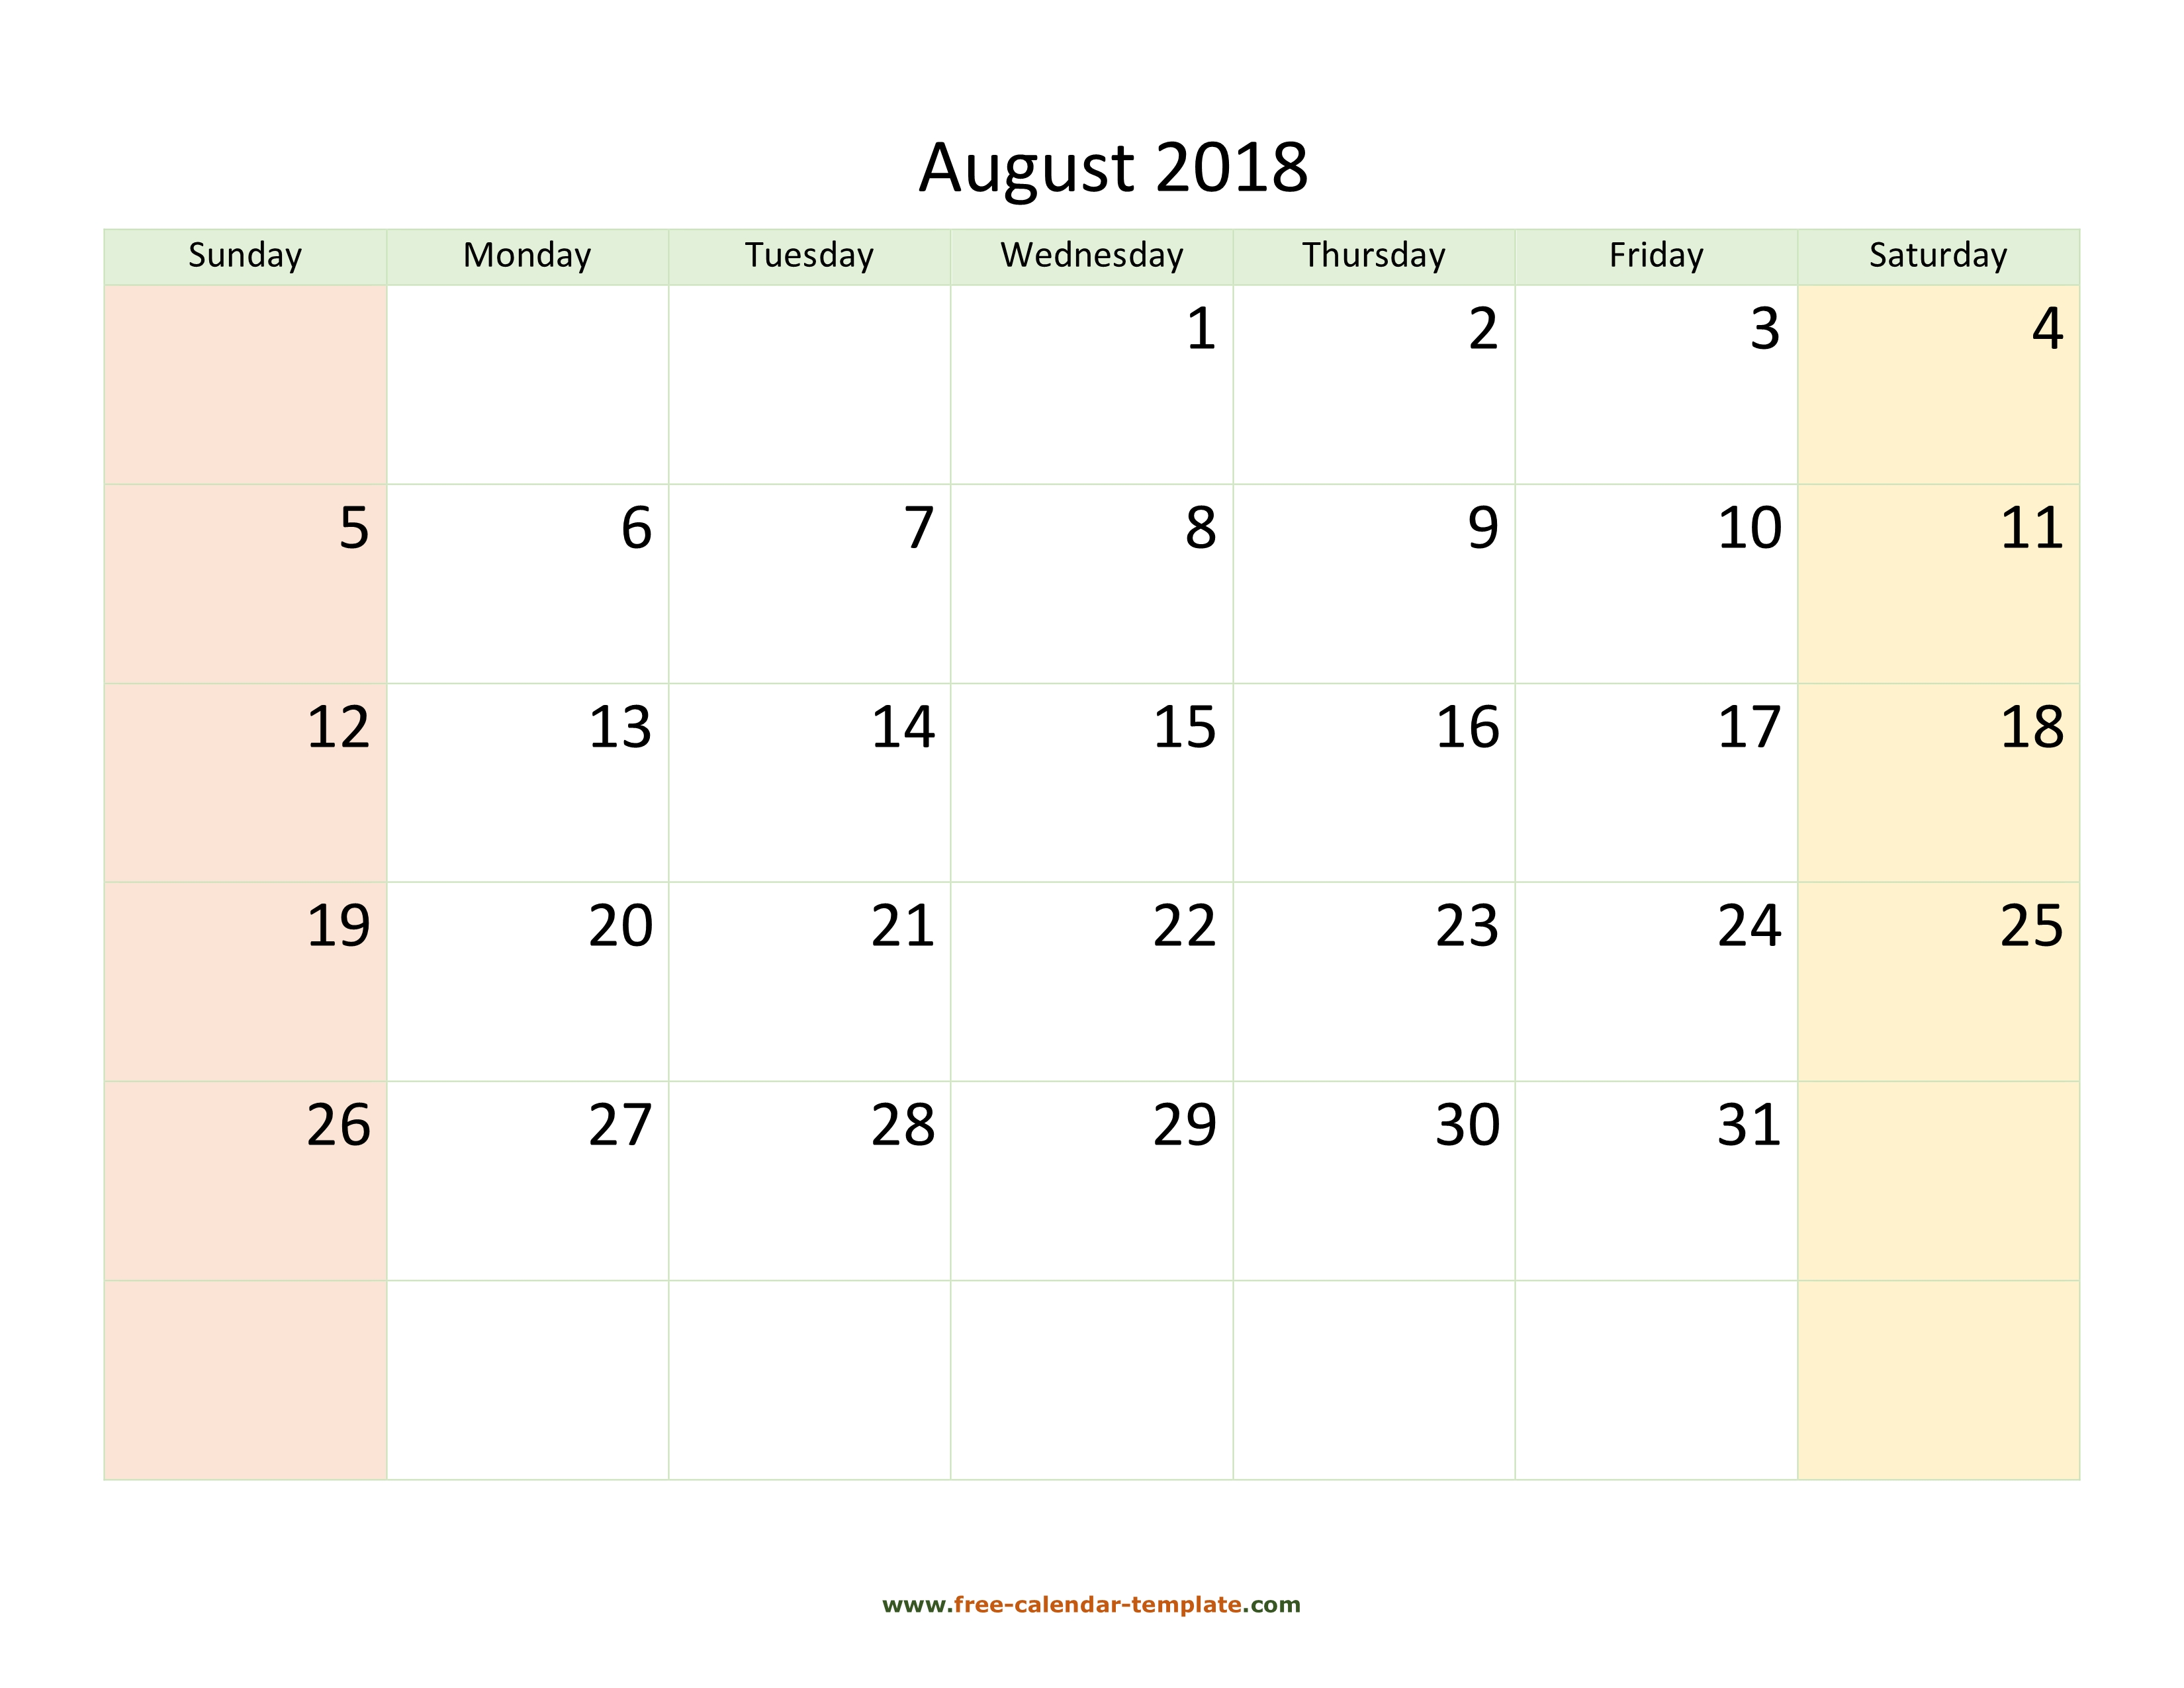 photograph relating to August Calendar Printable known as August 2018 Calendar Printable with coloring upon weekend